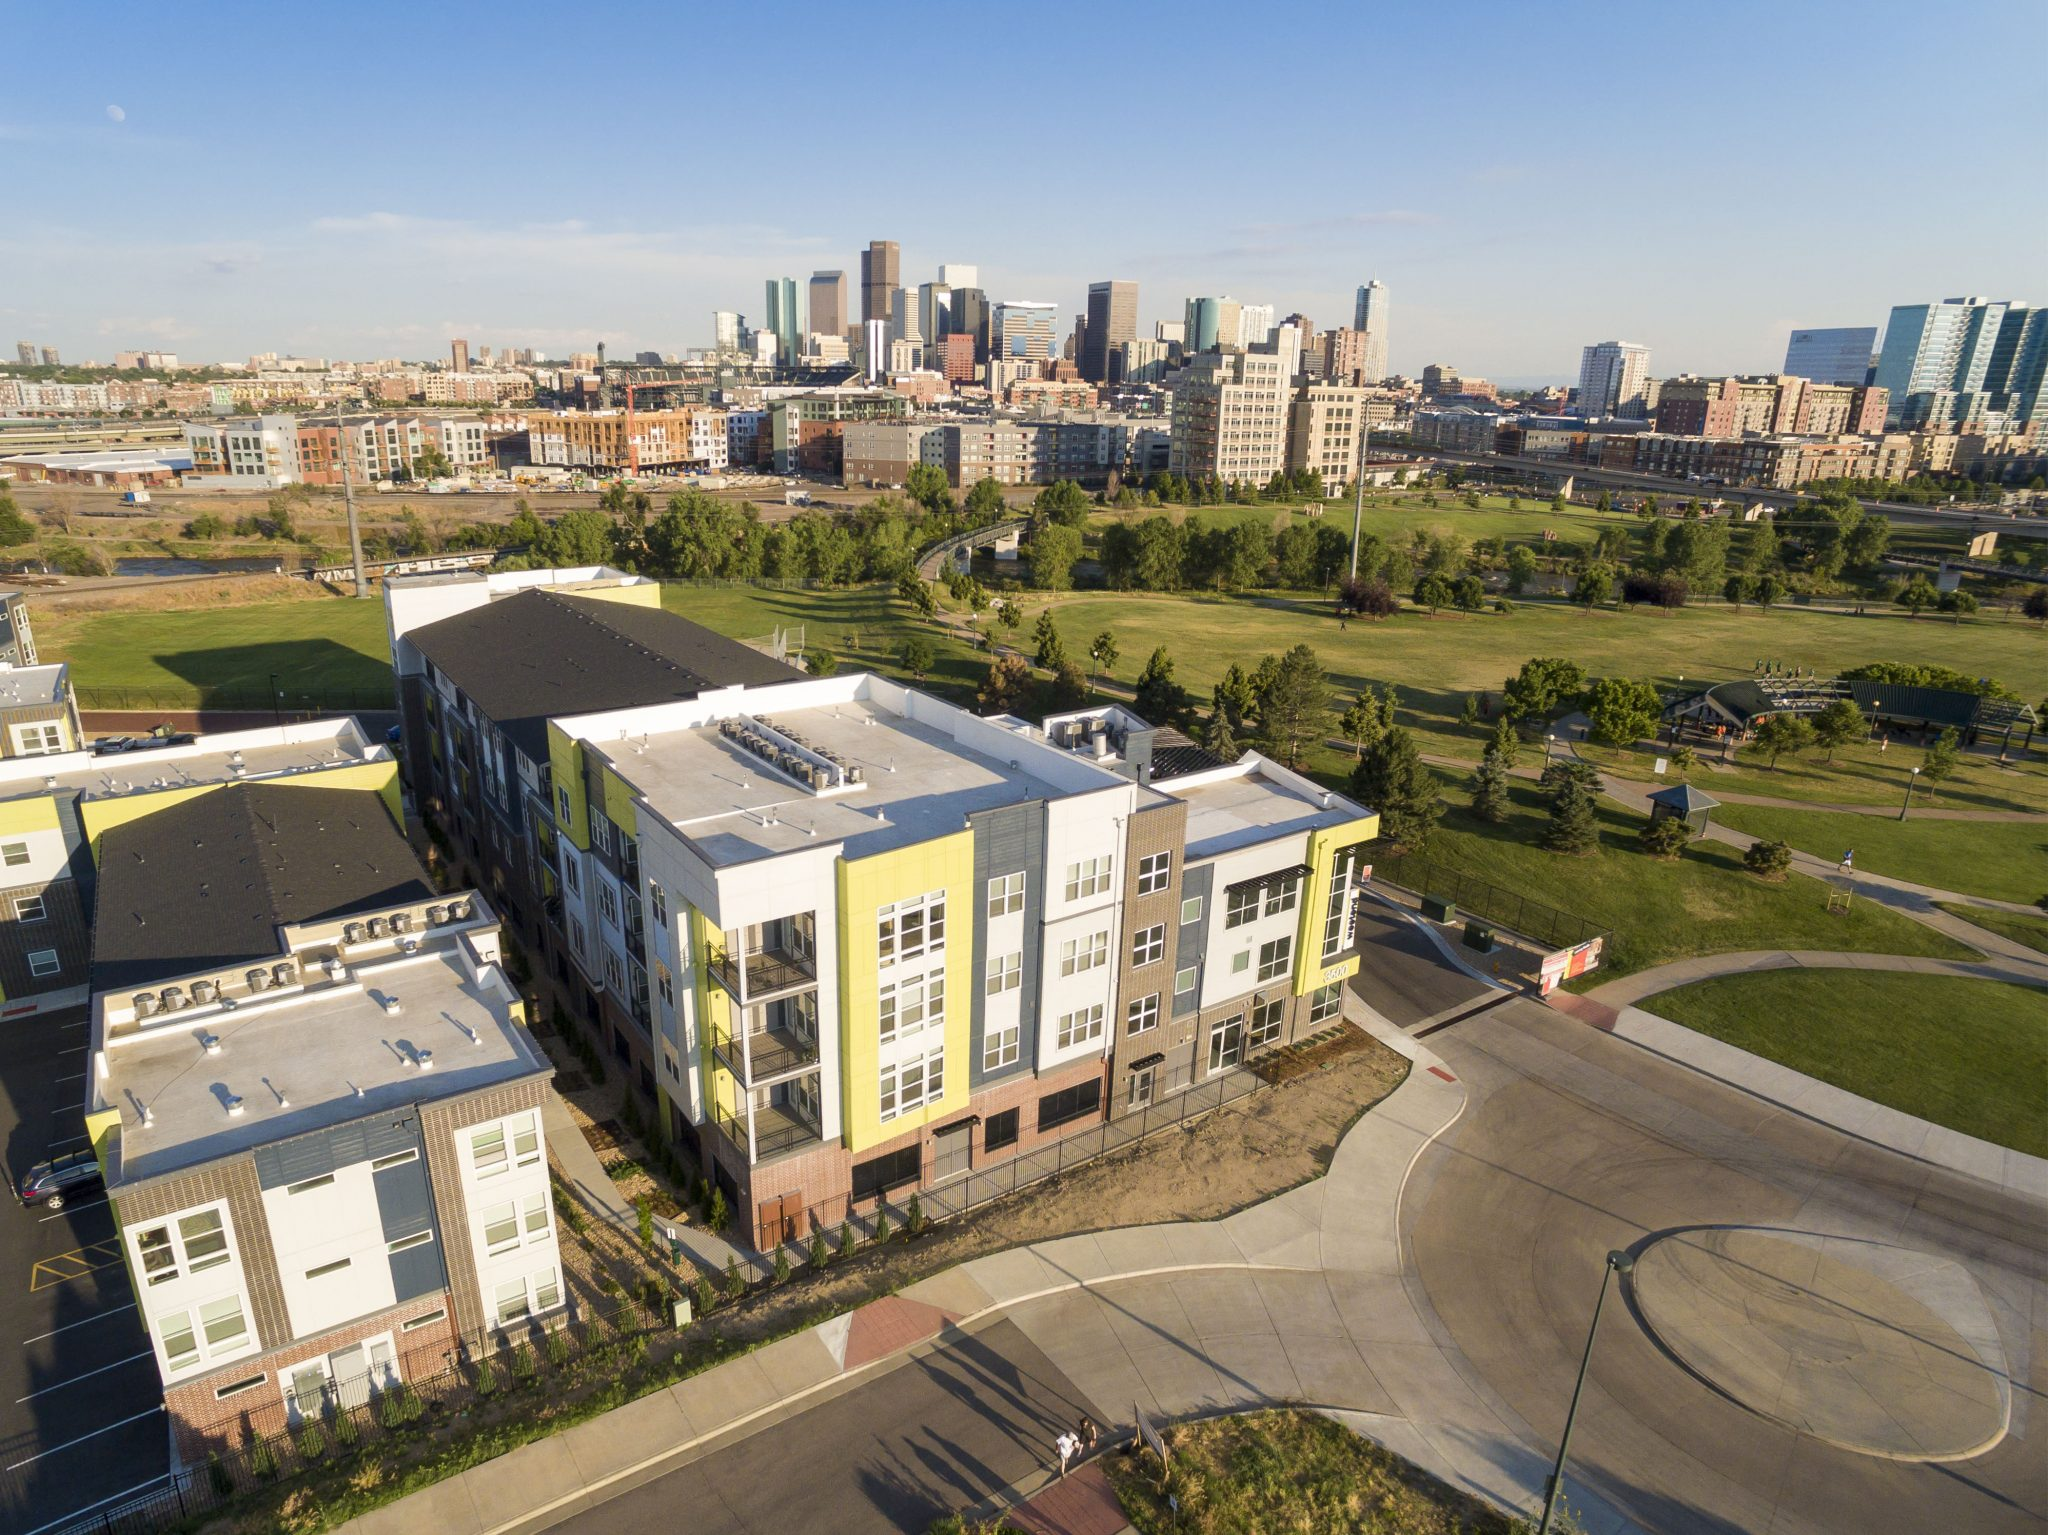 Aerial exterior of apartment complex with park and downtown skyline in background.